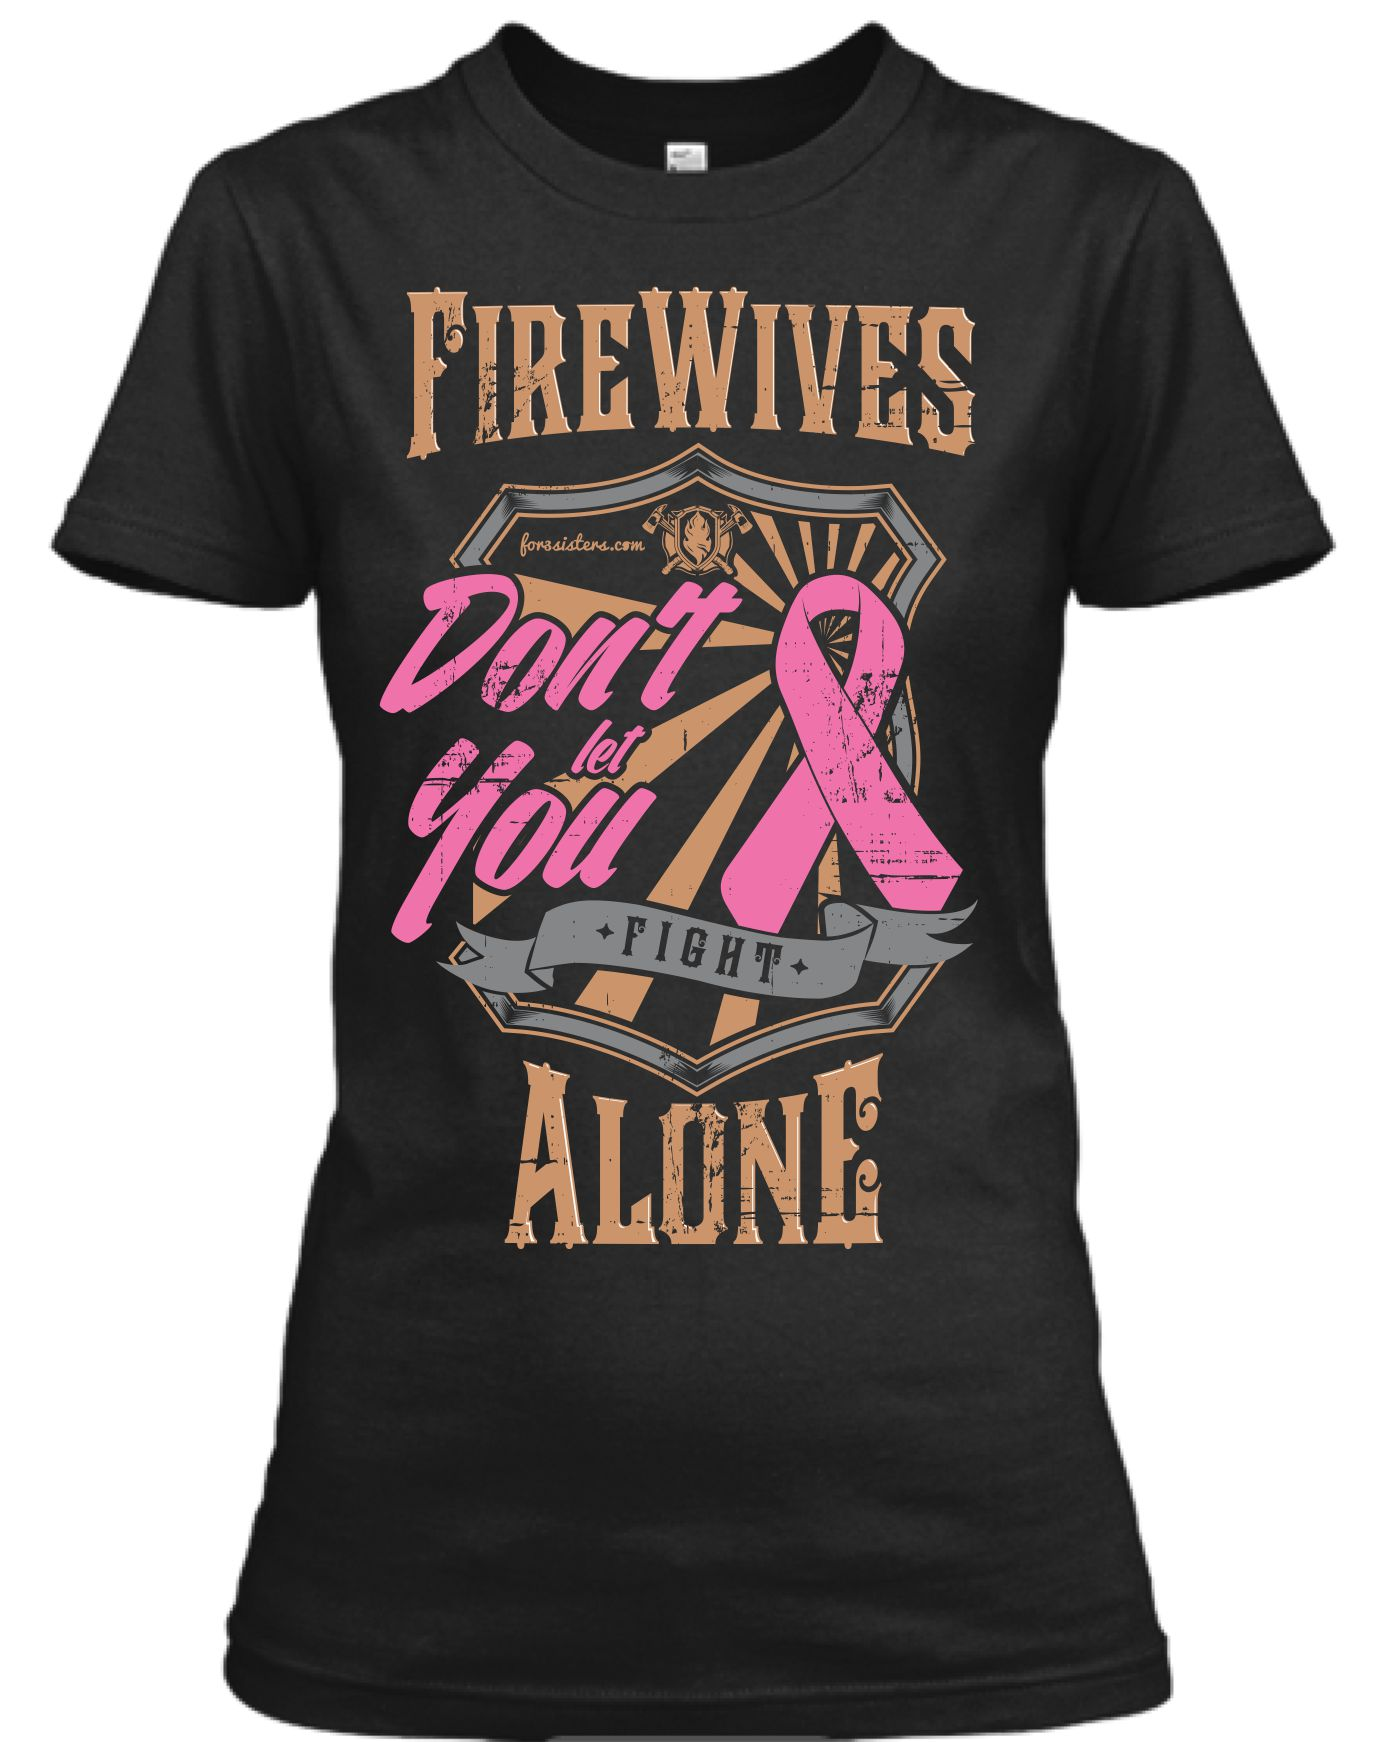 Firewives Raise Money for Breast Cancer Awareness – For3Sisters.com